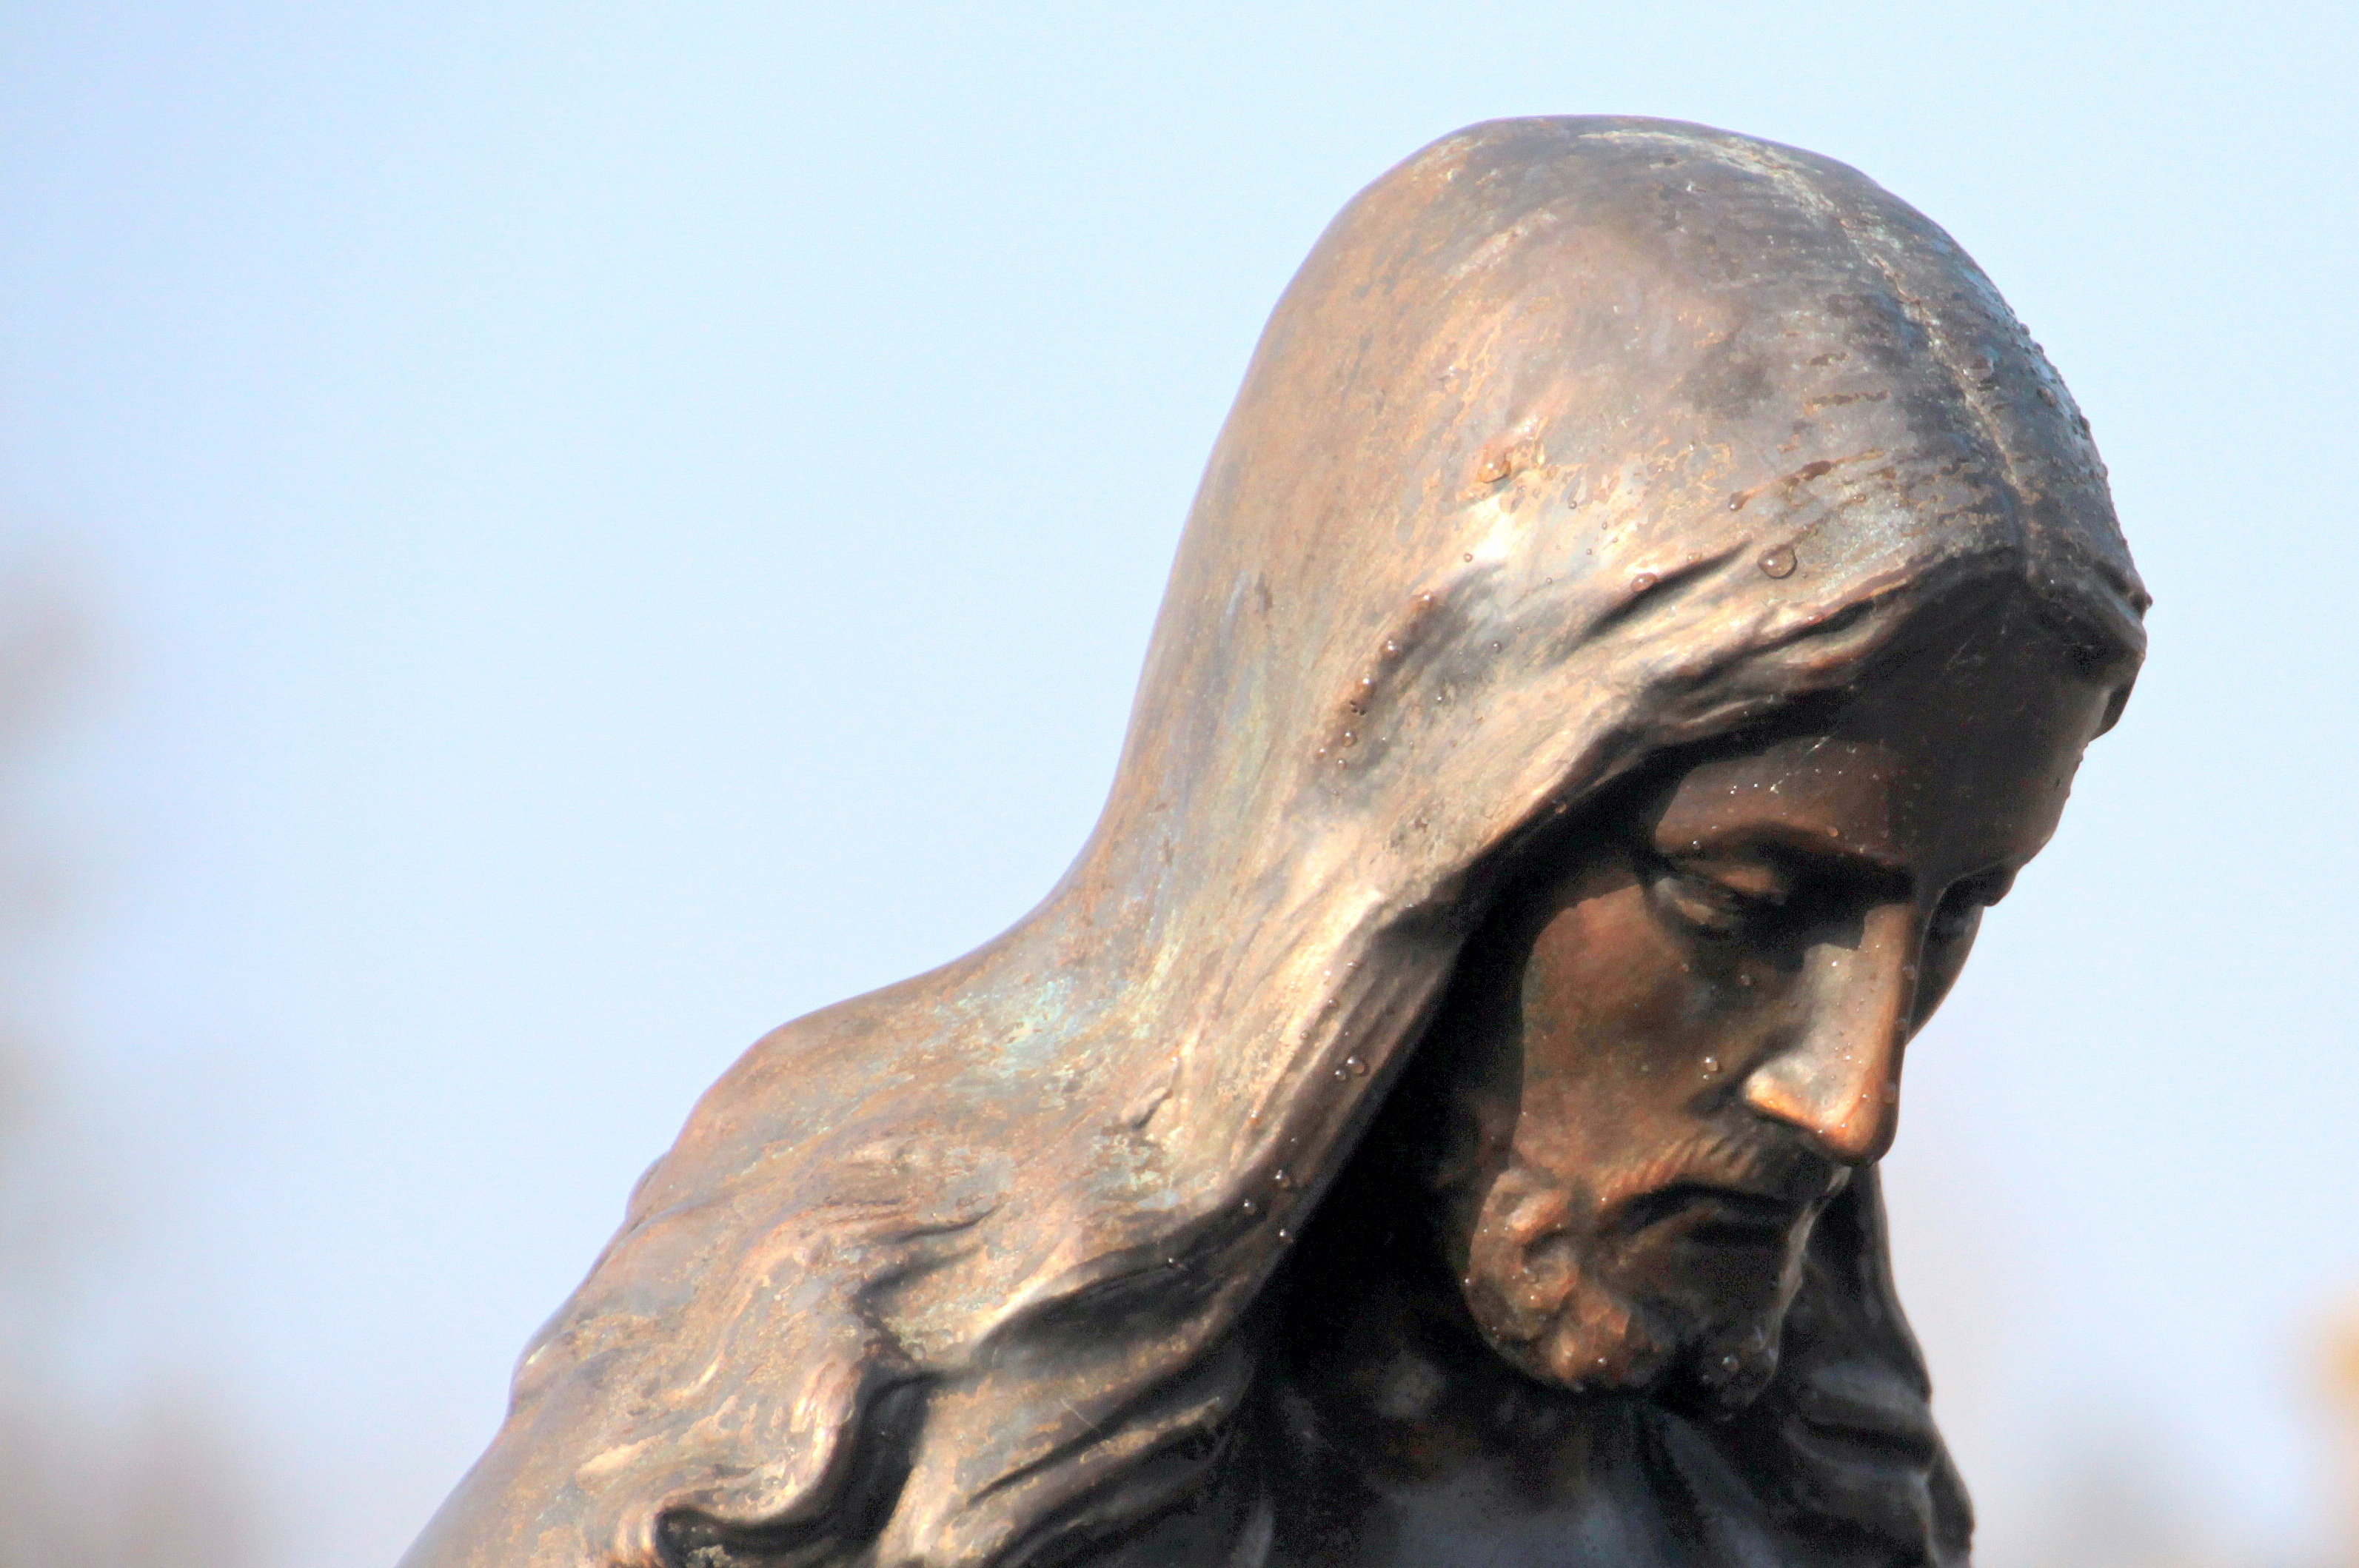 Jesus Sculpture, Fig, Figure, Jesus, Object, HQ Photo